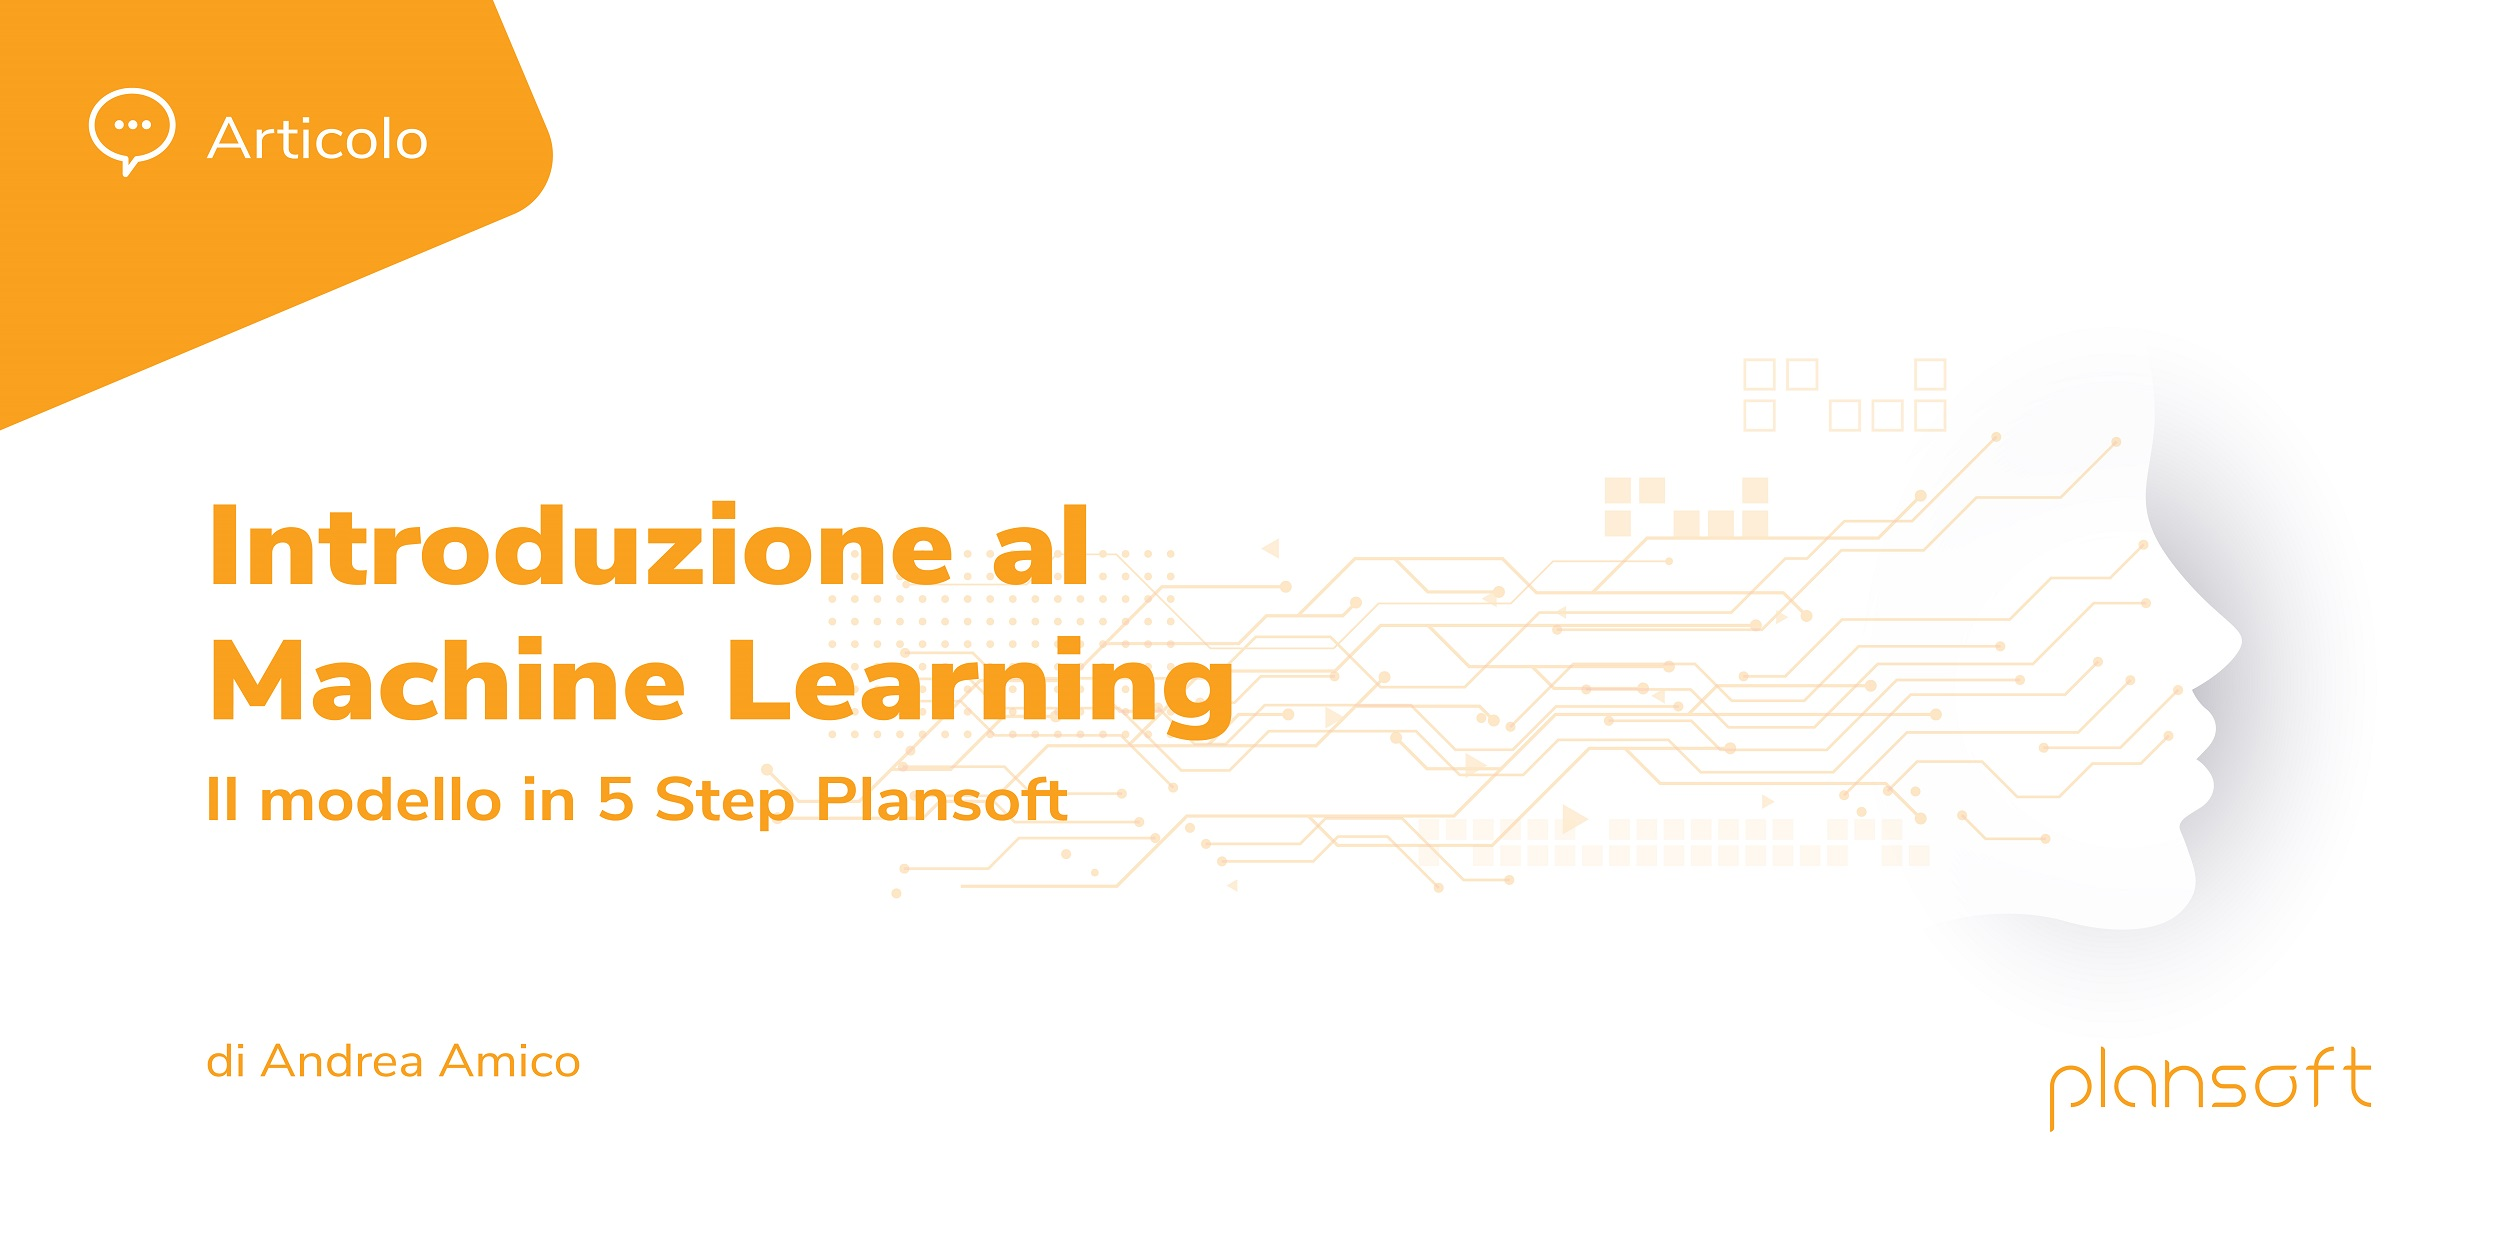 Introduzione al Machine Learning